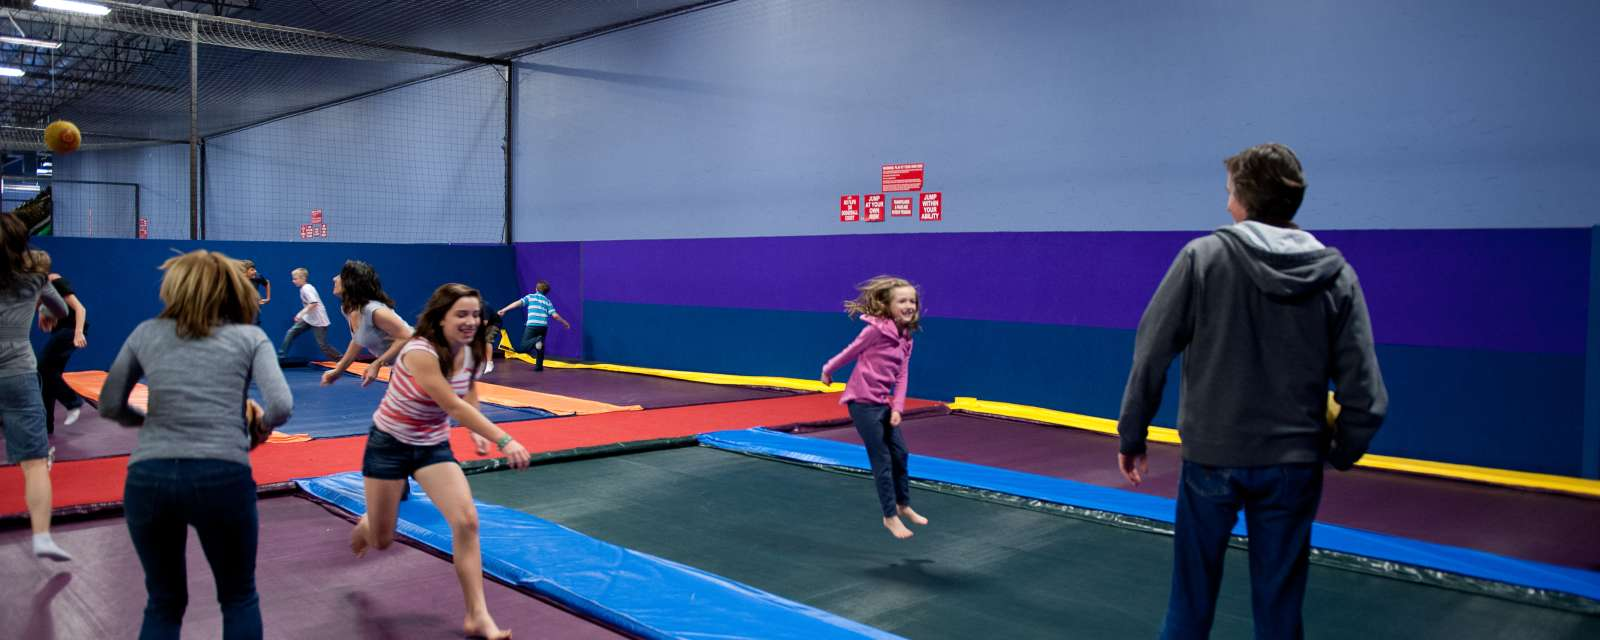 Chandler Az Family Fun Things To Do With Kids